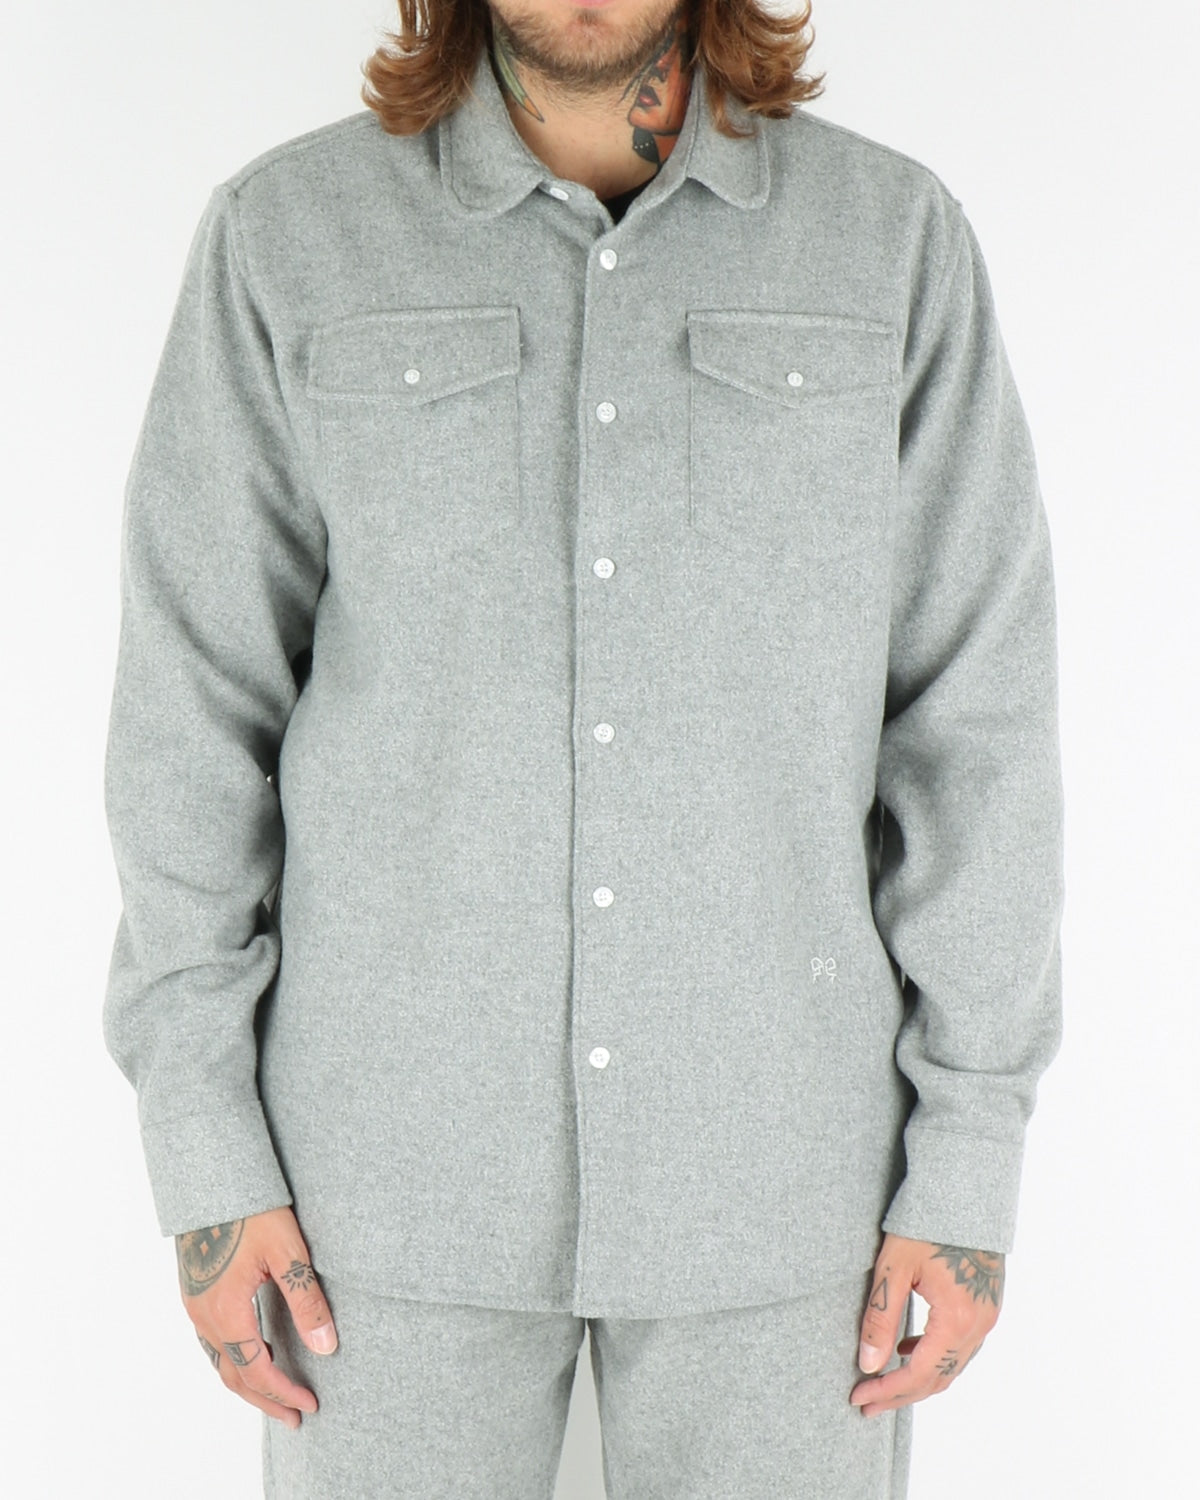 soulland_tom western shirt_grey_view_1_3